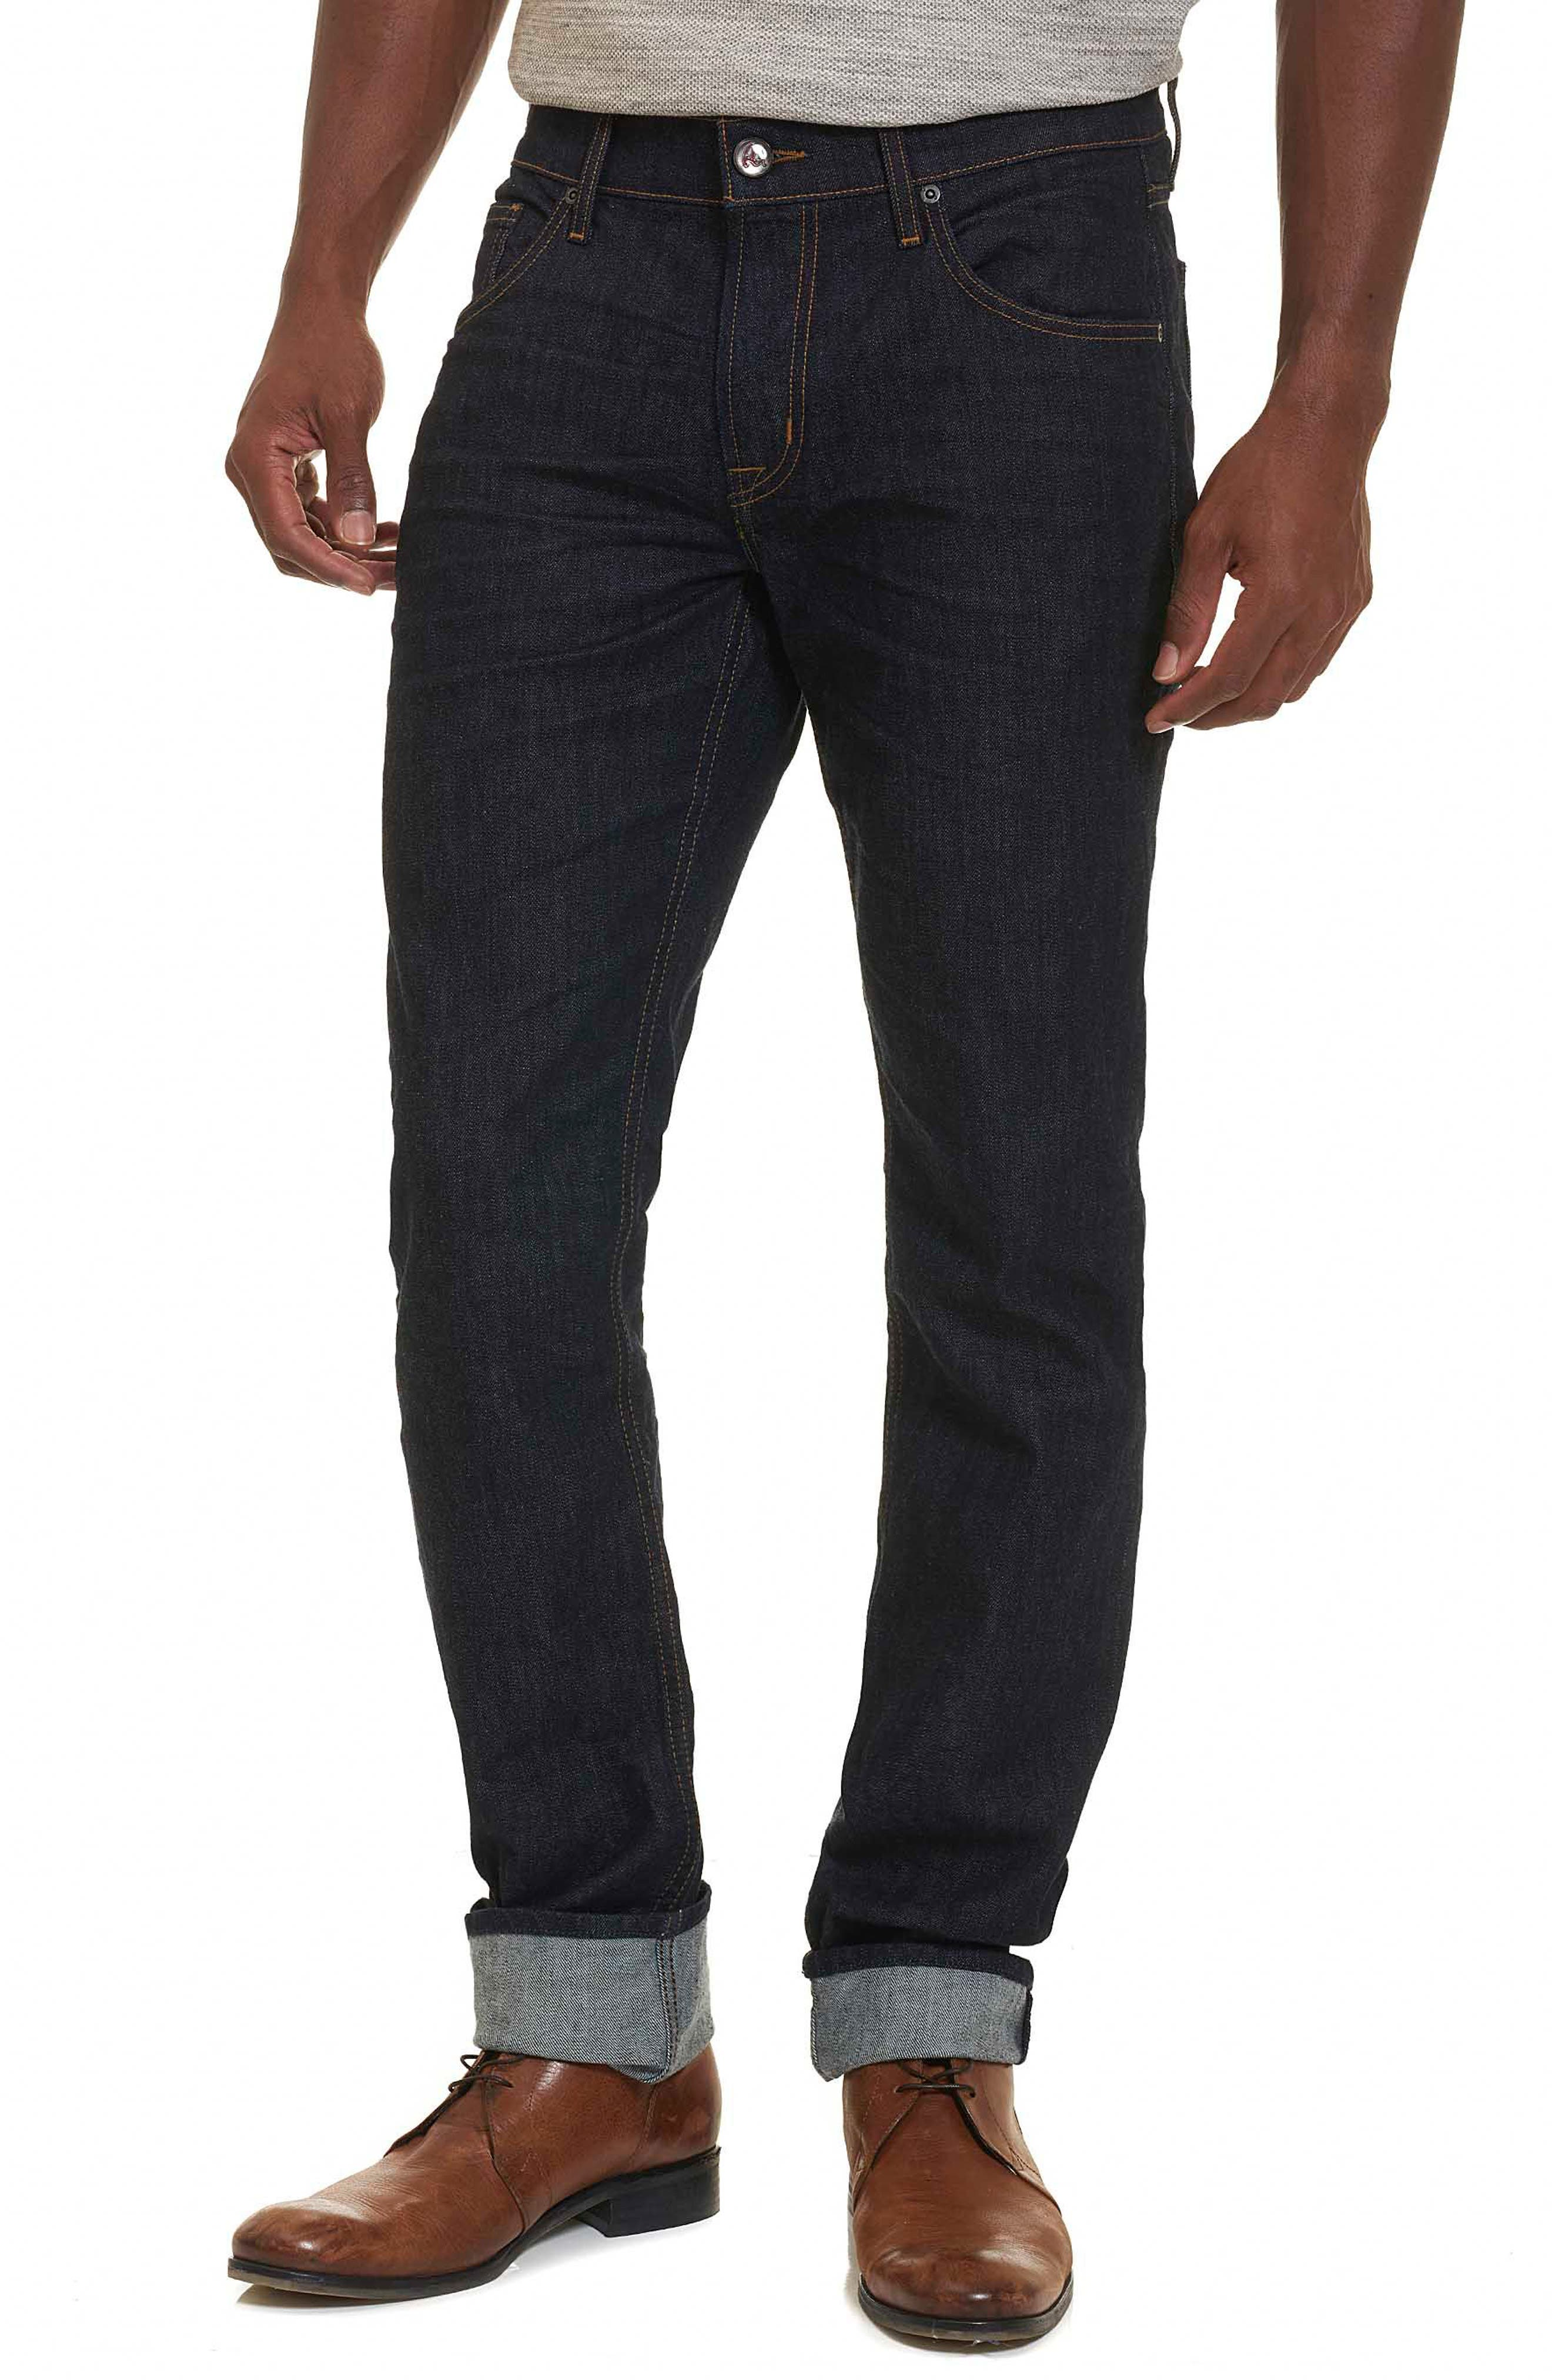 Resist Tailored Fit Jeans,                             Main thumbnail 1, color,                             405